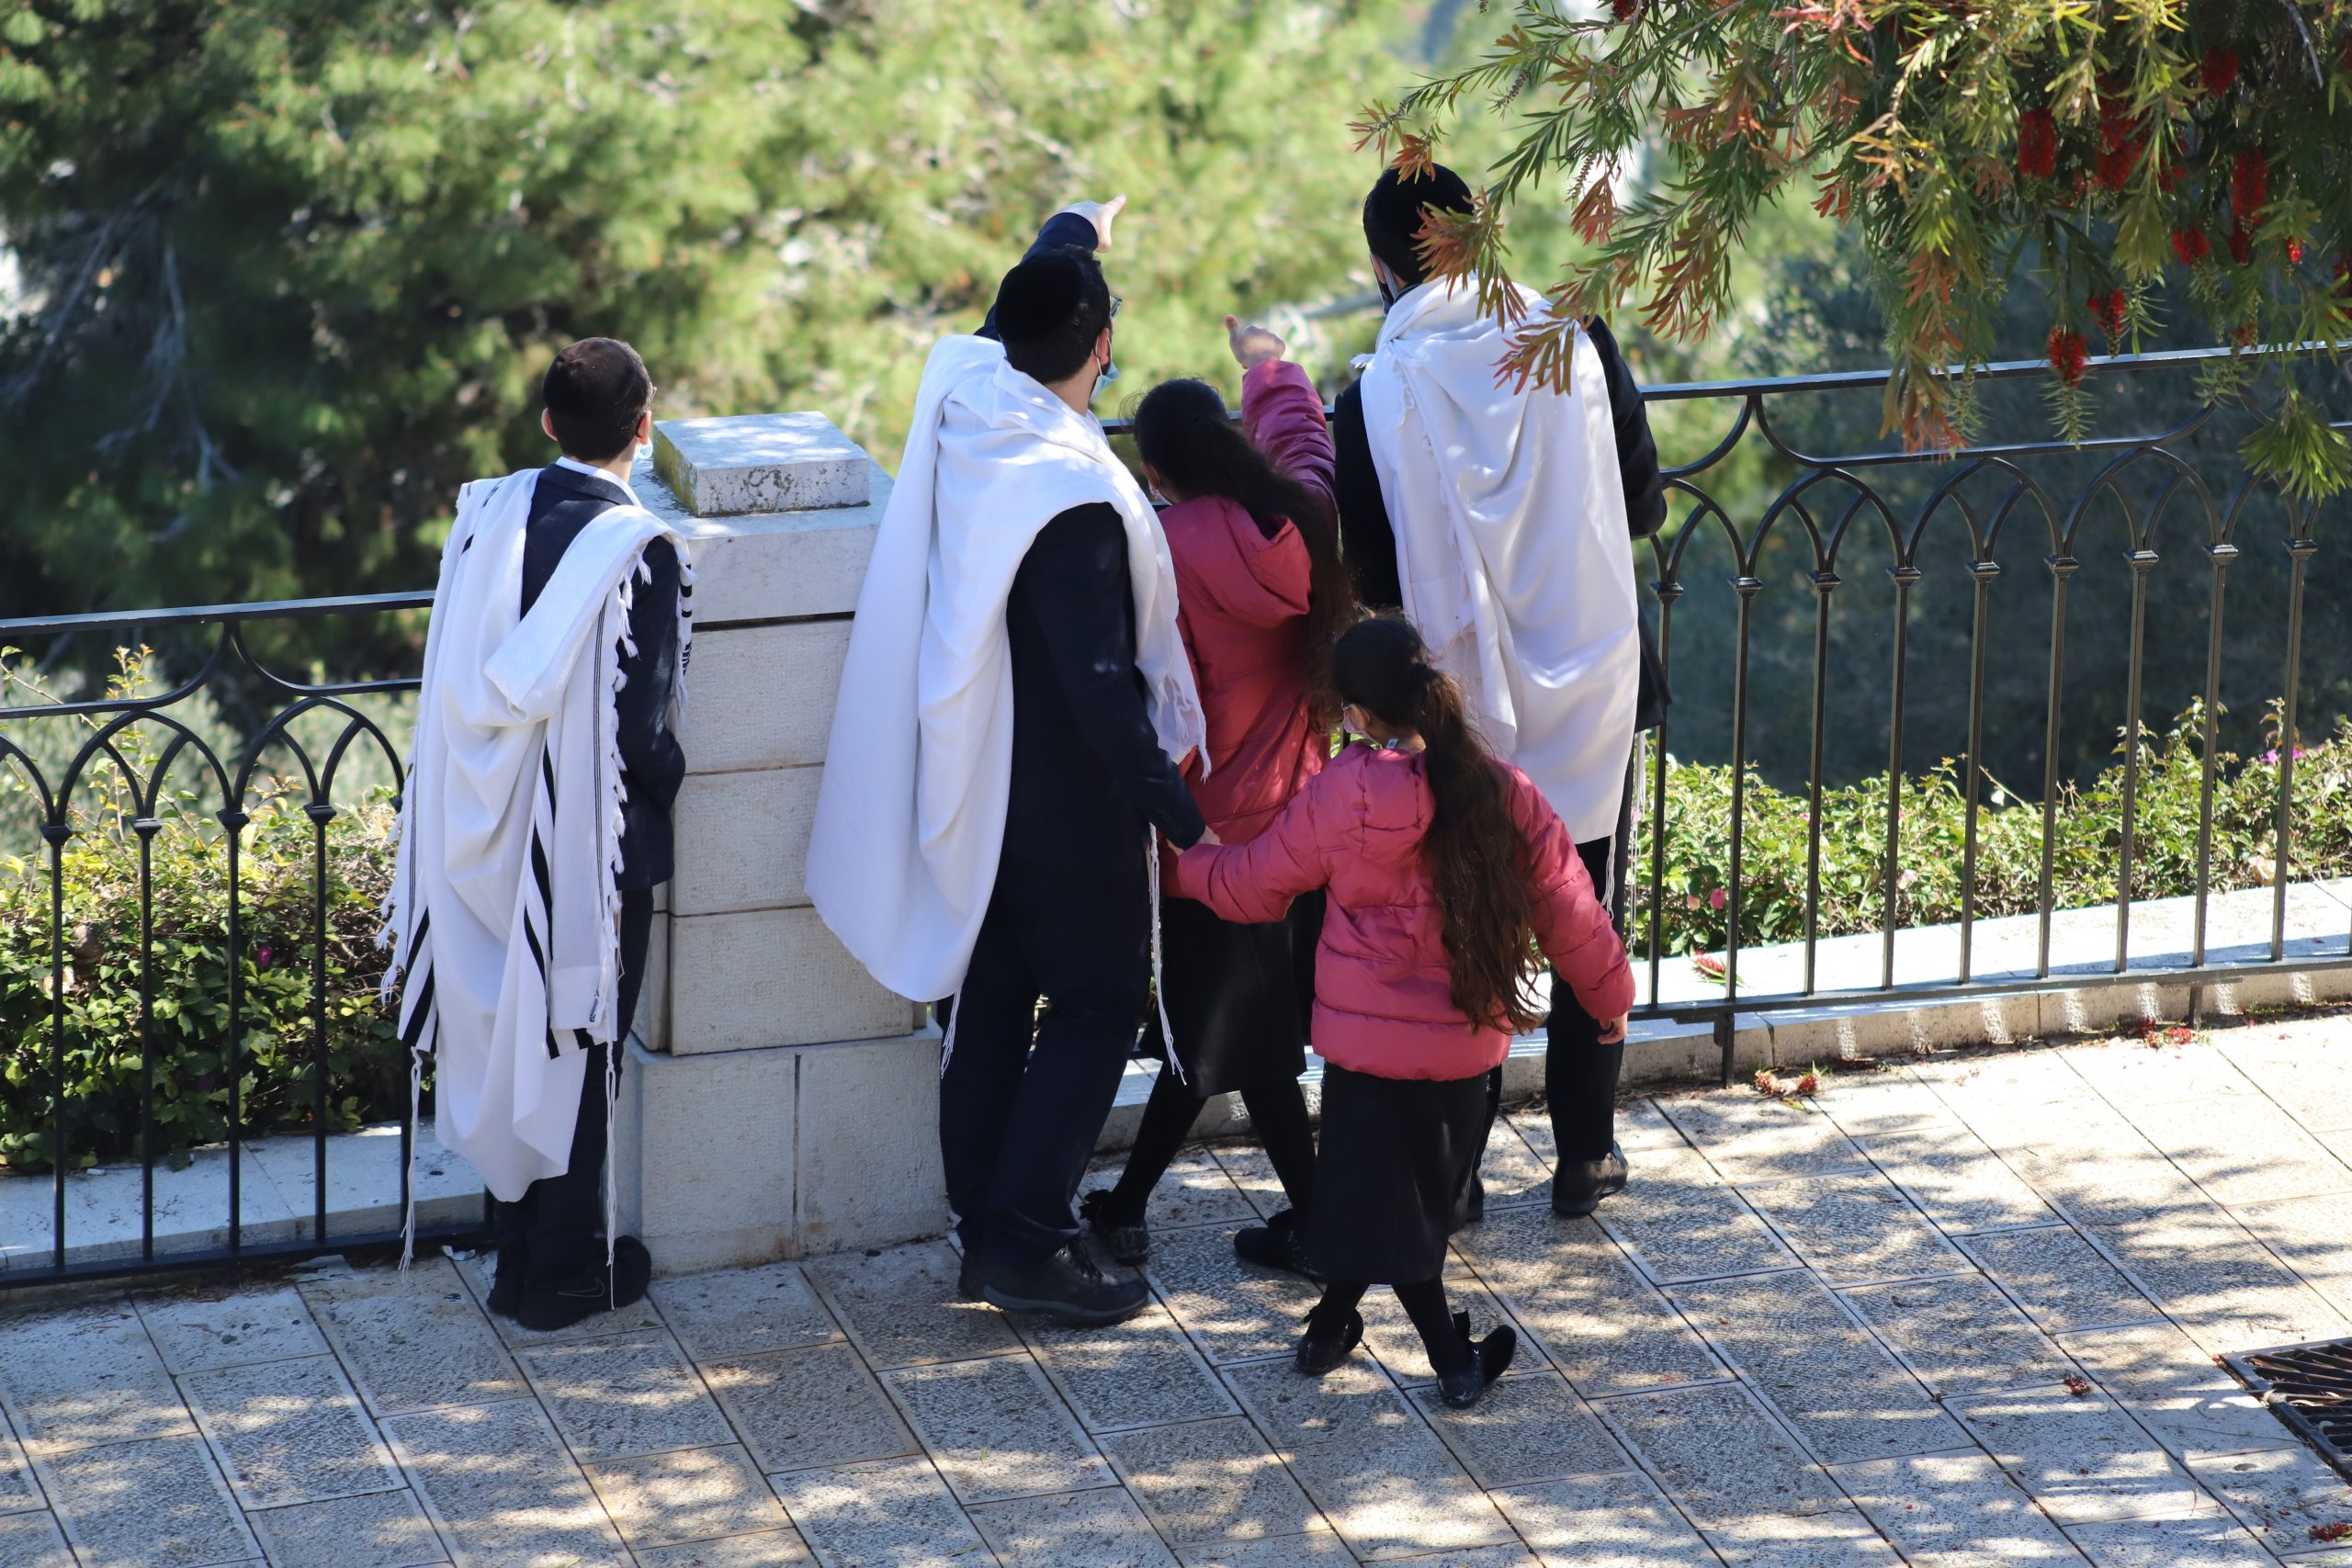 Israeli society is increasingly divided, view of haredim worsens